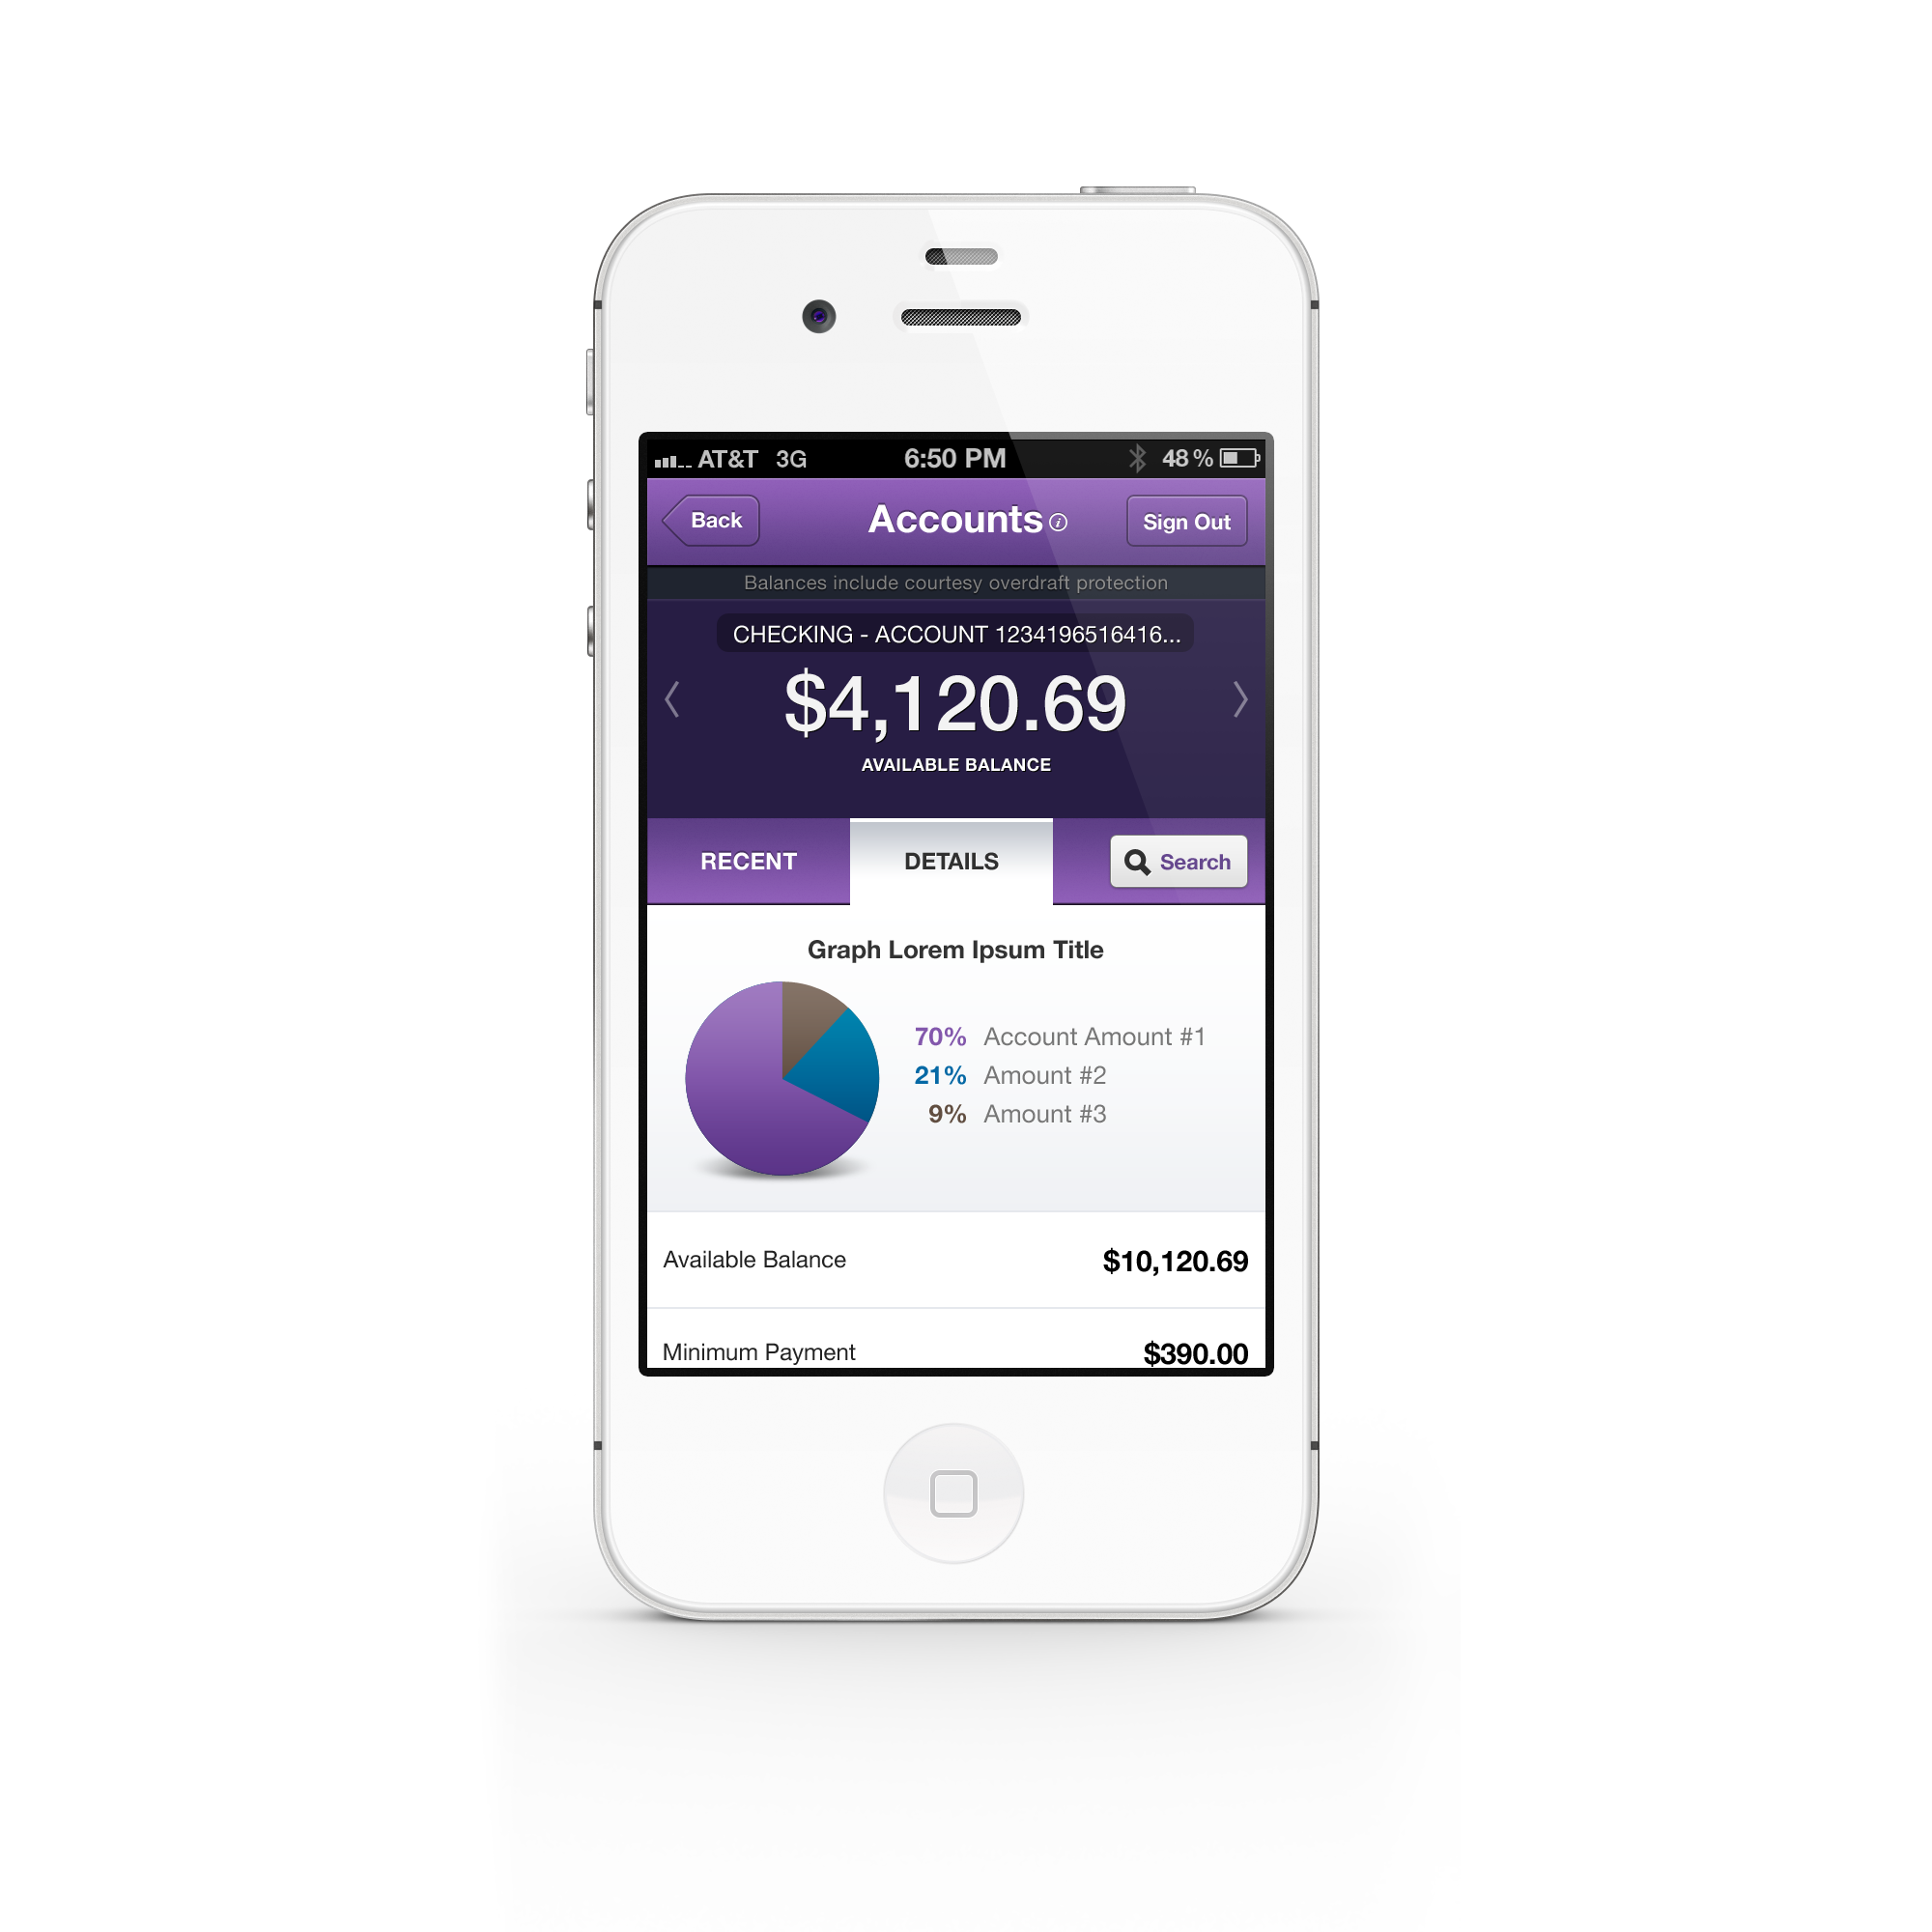 Mobile_Banking_iPhone_4_0006_Layer-Comp-7.png